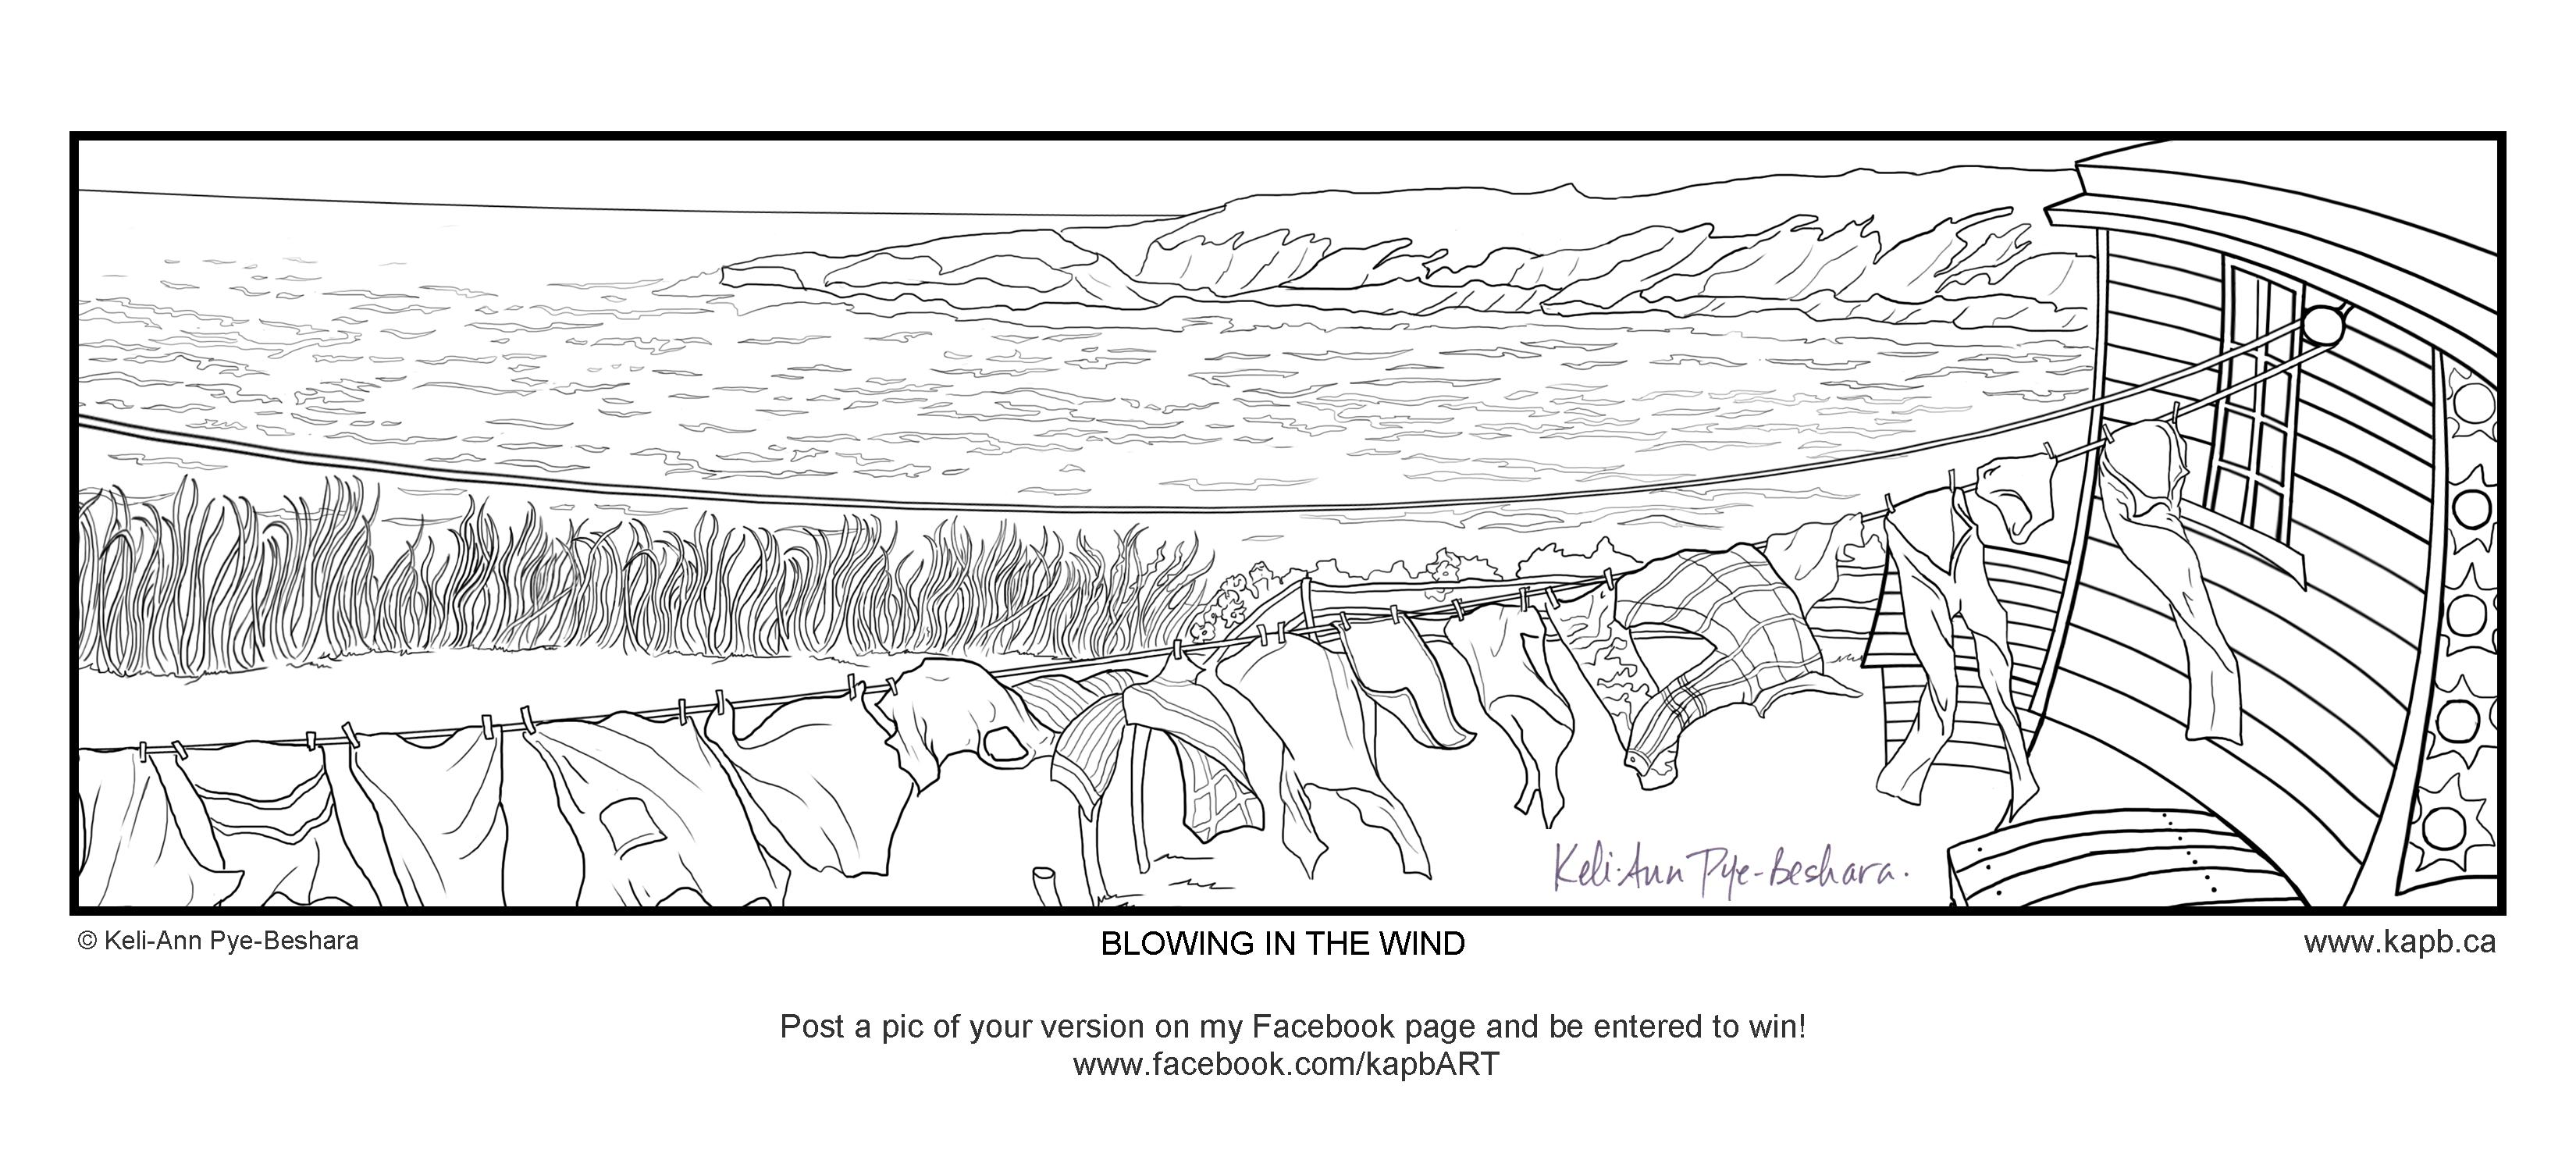 newfoundland flag coloring page download newfoundland coloring for free designlooter coloring page newfoundland flag